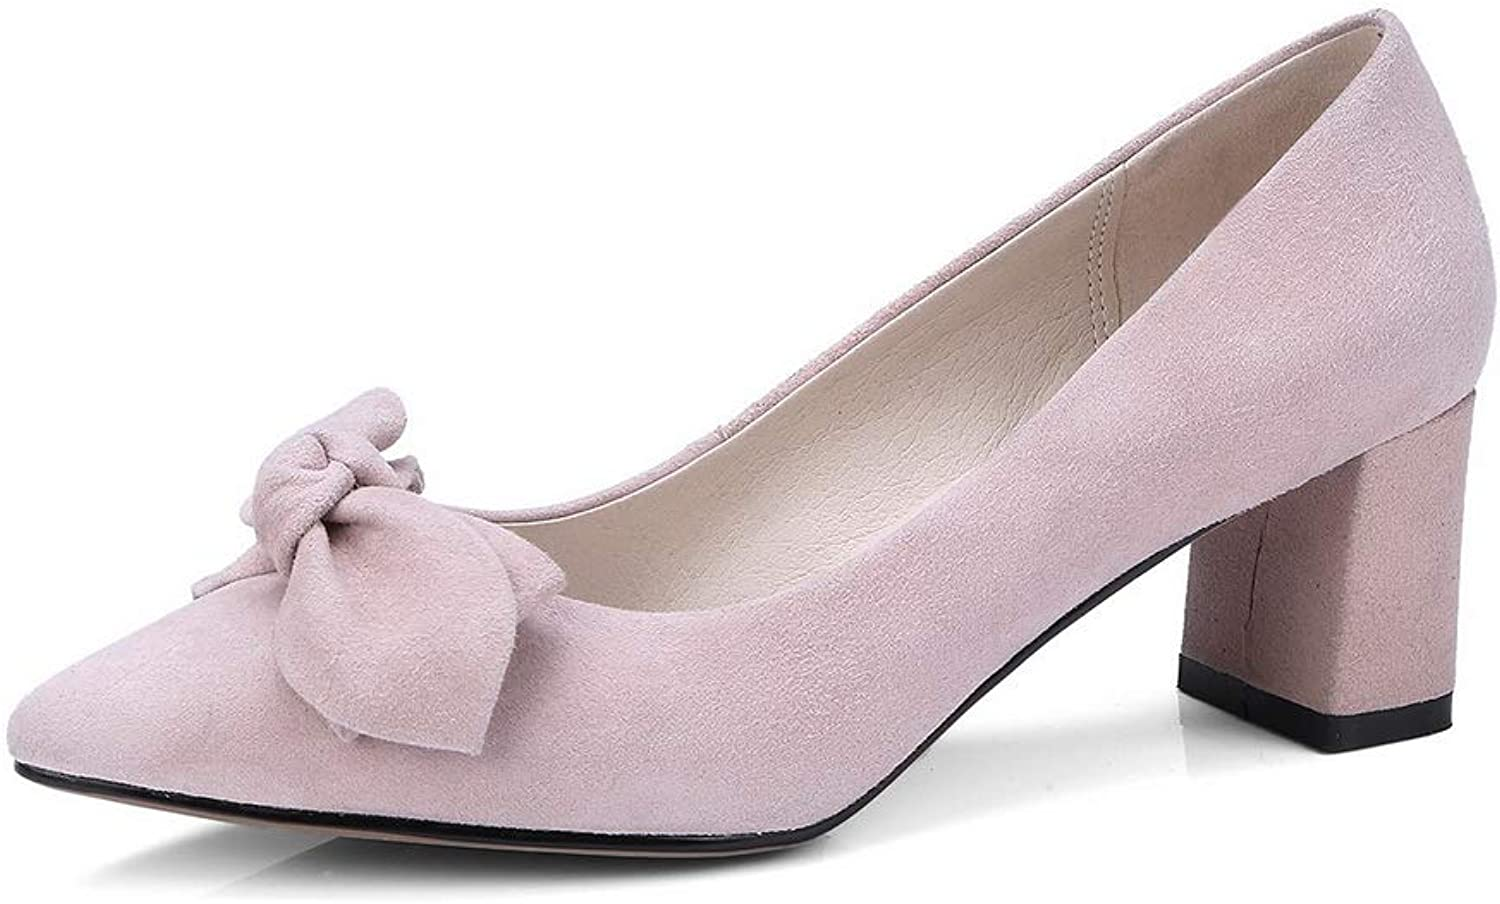 AN Womens Square Heels Pointed-Toe Bows Pink Sheepskin Pumps shoes DGU00827-7 B(M) US